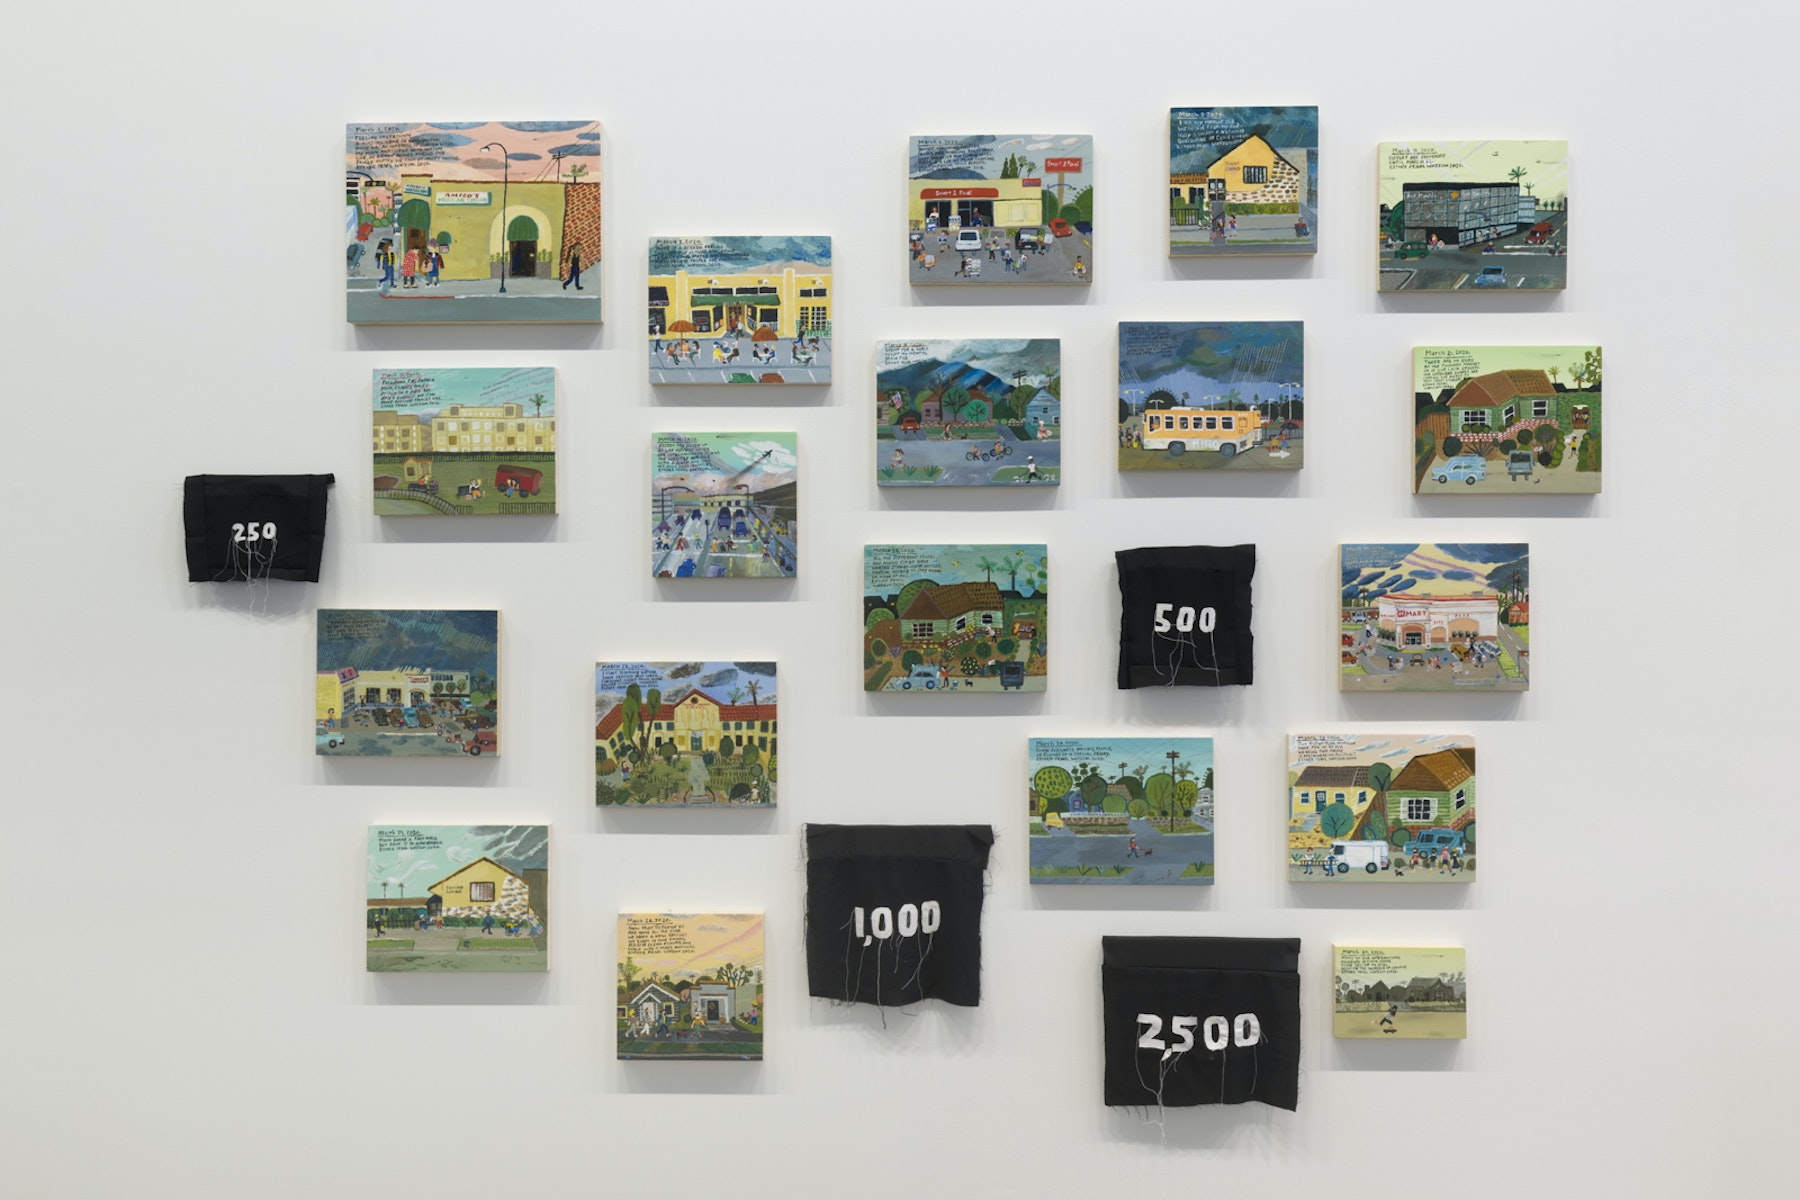 """Esther Pearl Watson """"March Set,"""" 2020 Acrylic with pencil on panel Dimensions variable Inventory #EPW364 Courtesy of the artist and Vielmetter Los Angeles Photo credit: Jeff Mclane"""